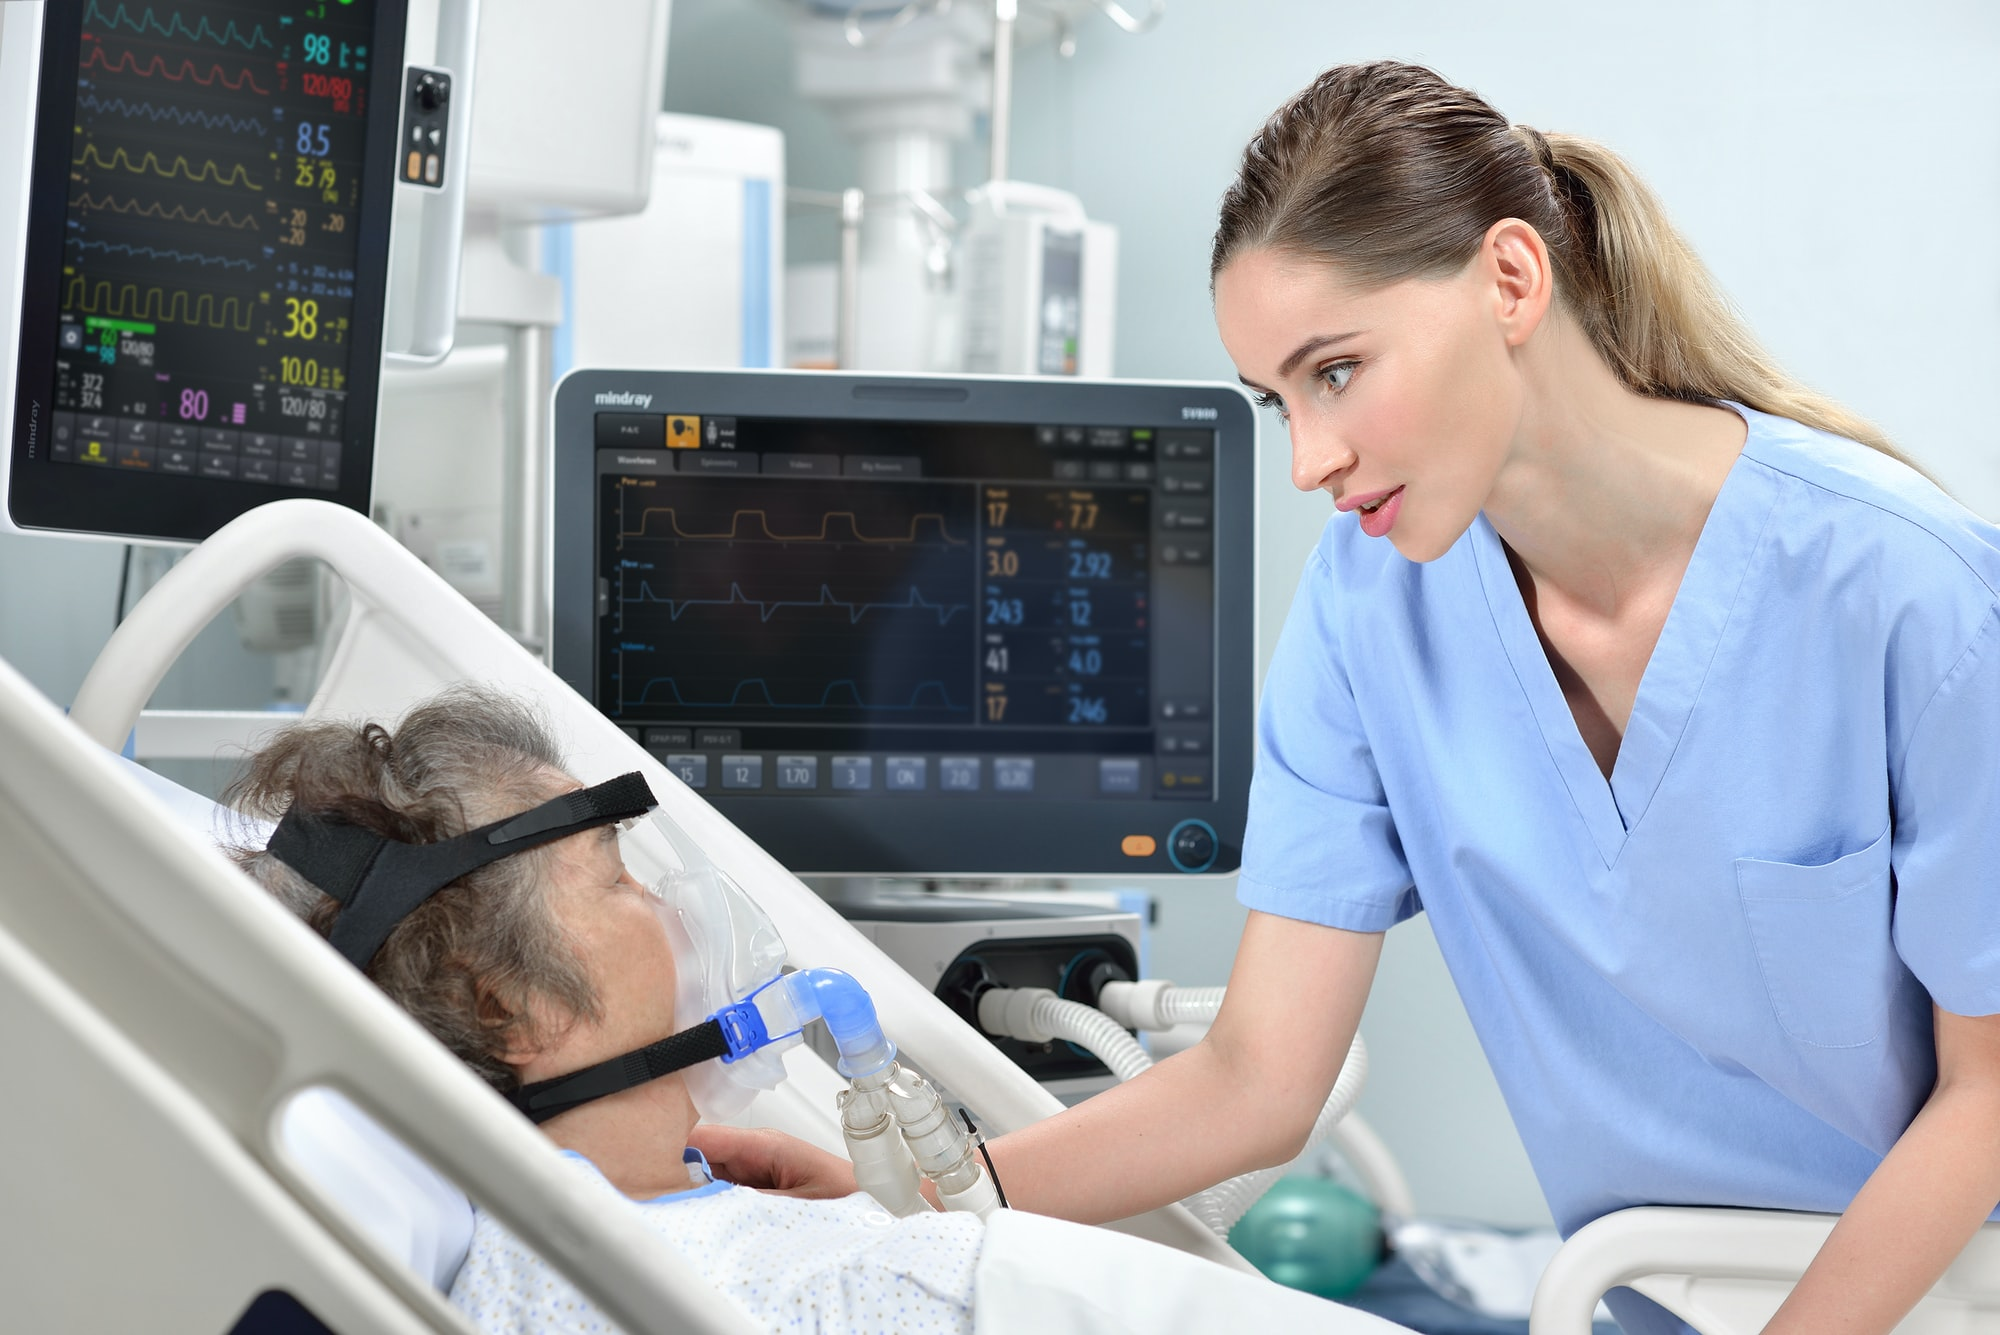 Israeli startup gives ventilated COVID patients a way to communicate